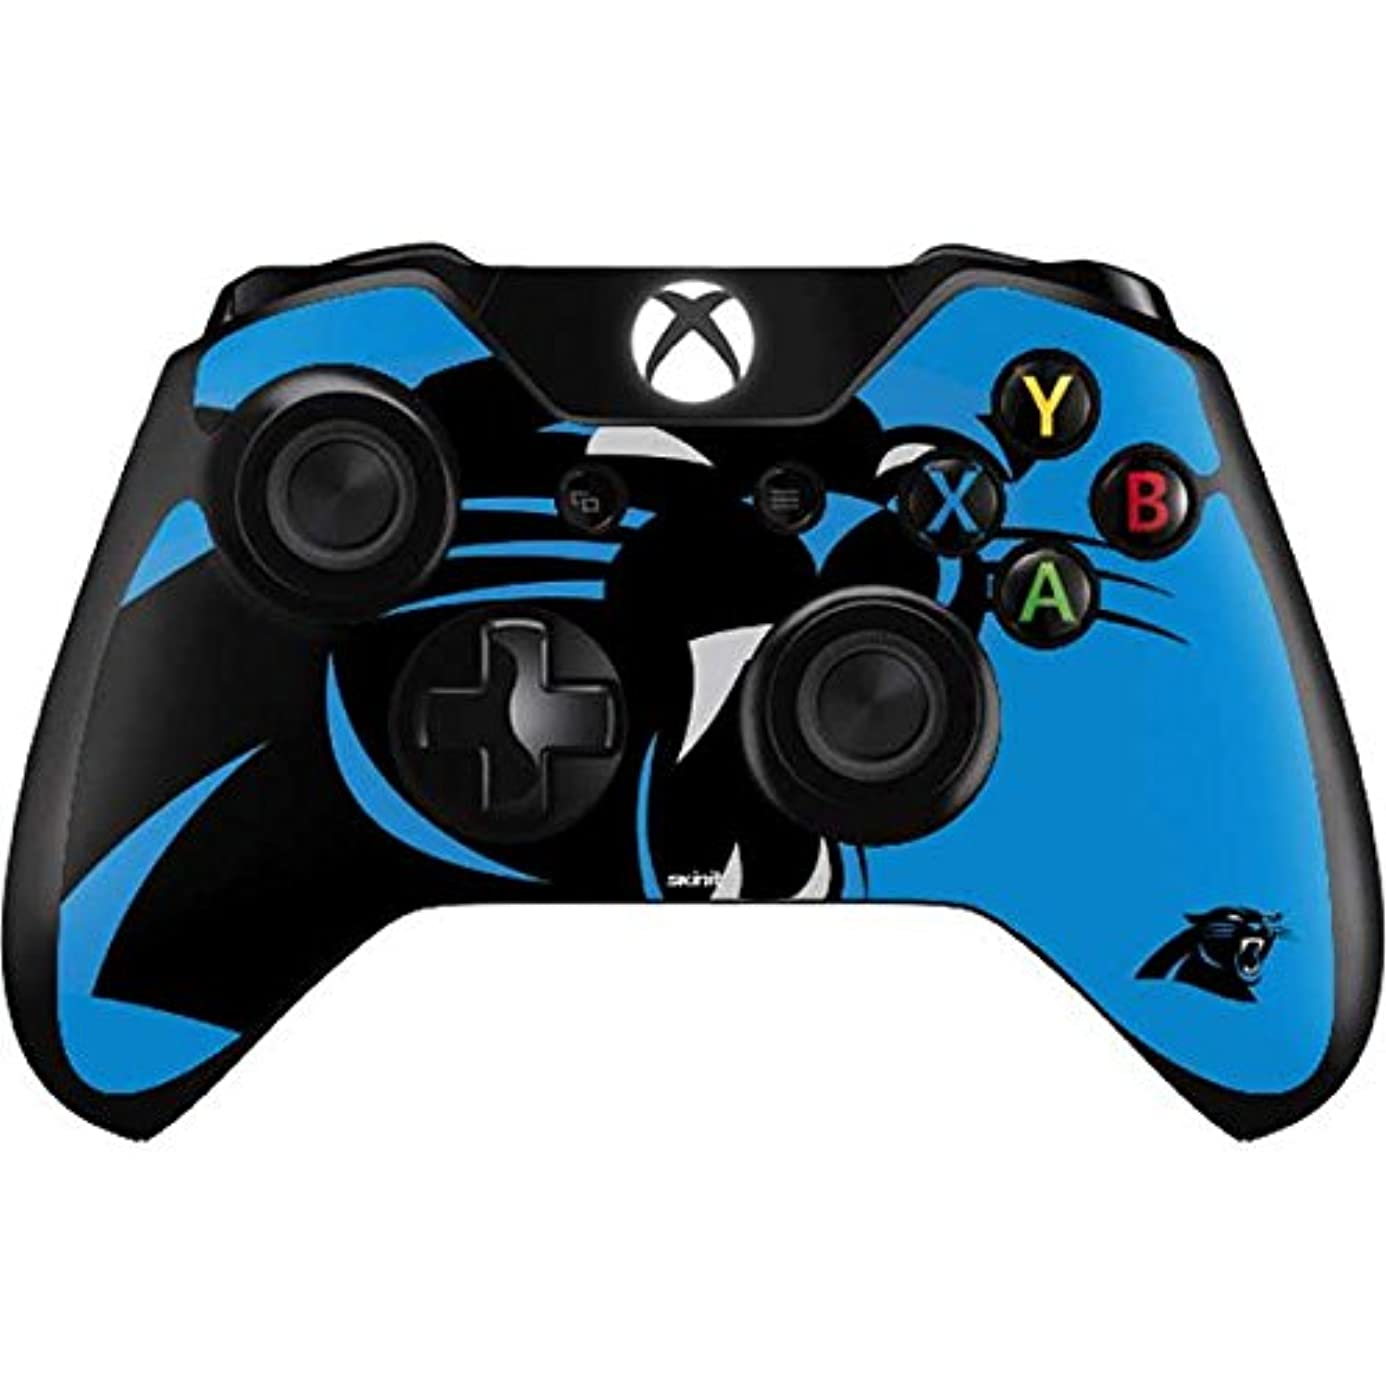 Skinit Carolina Panthers Large Logo Xbox One Controller Skin - Officially Licensed NFL Gaming Decal - Ultra Thin, Lightweight Vinyl Decal Protection